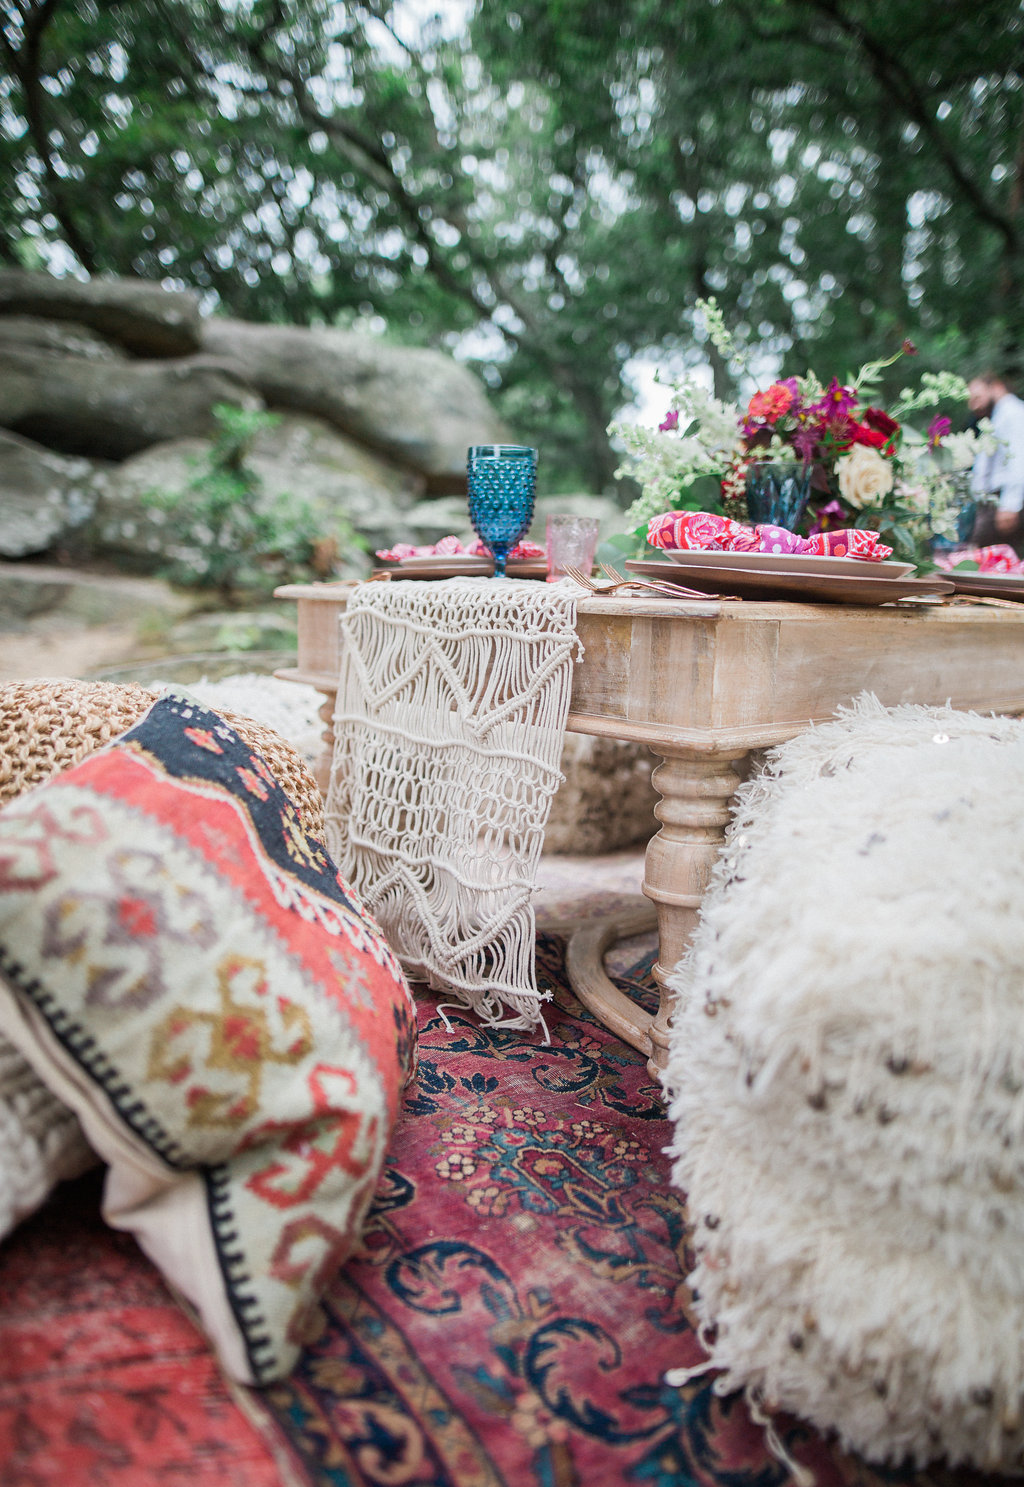 macrame table runner - http://ruffledblog.com/nomadic-cliffside-elopement-inspiration